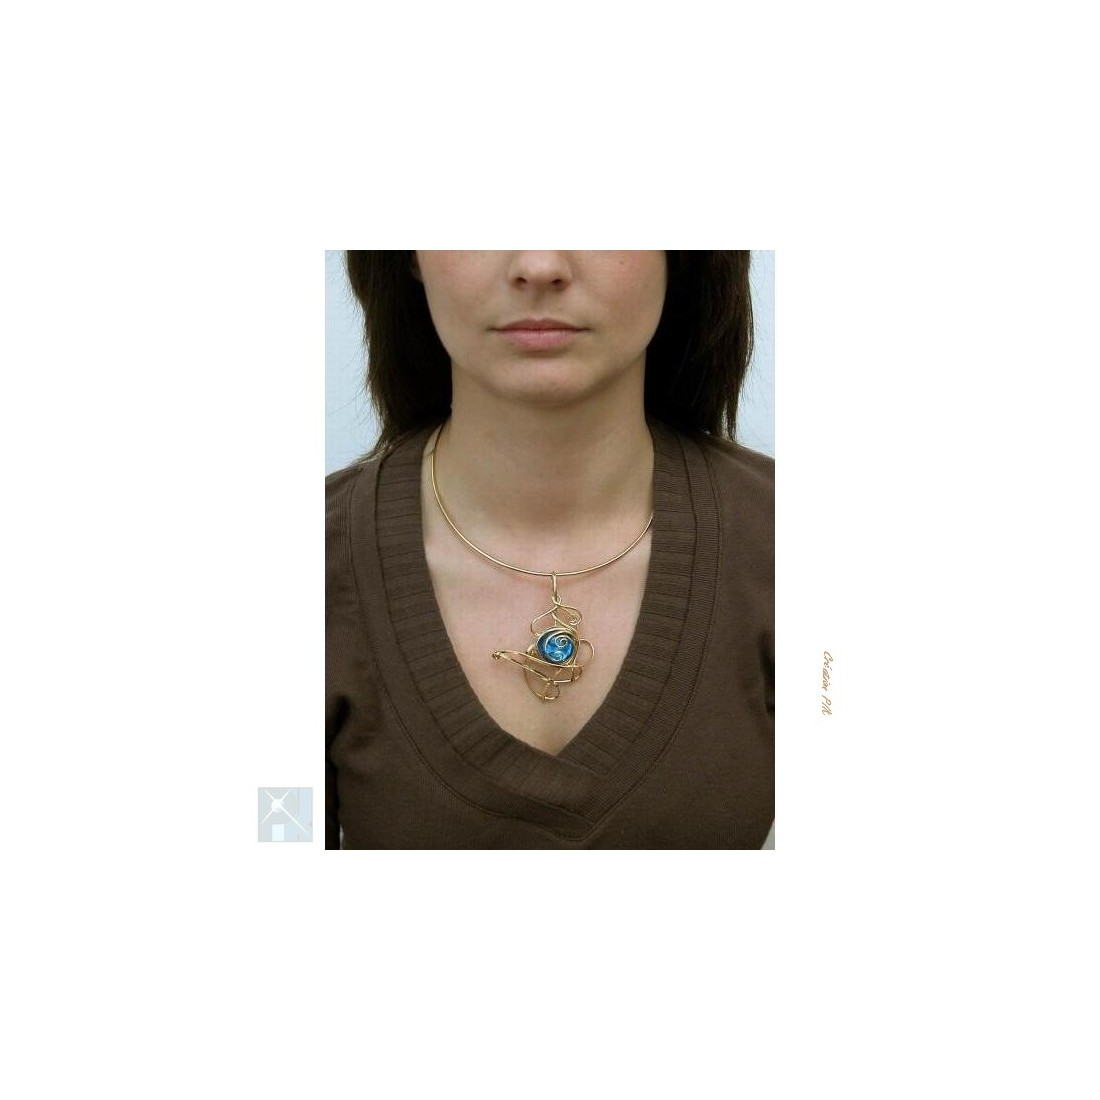 Collier doré de couleur bleue aïgue marine